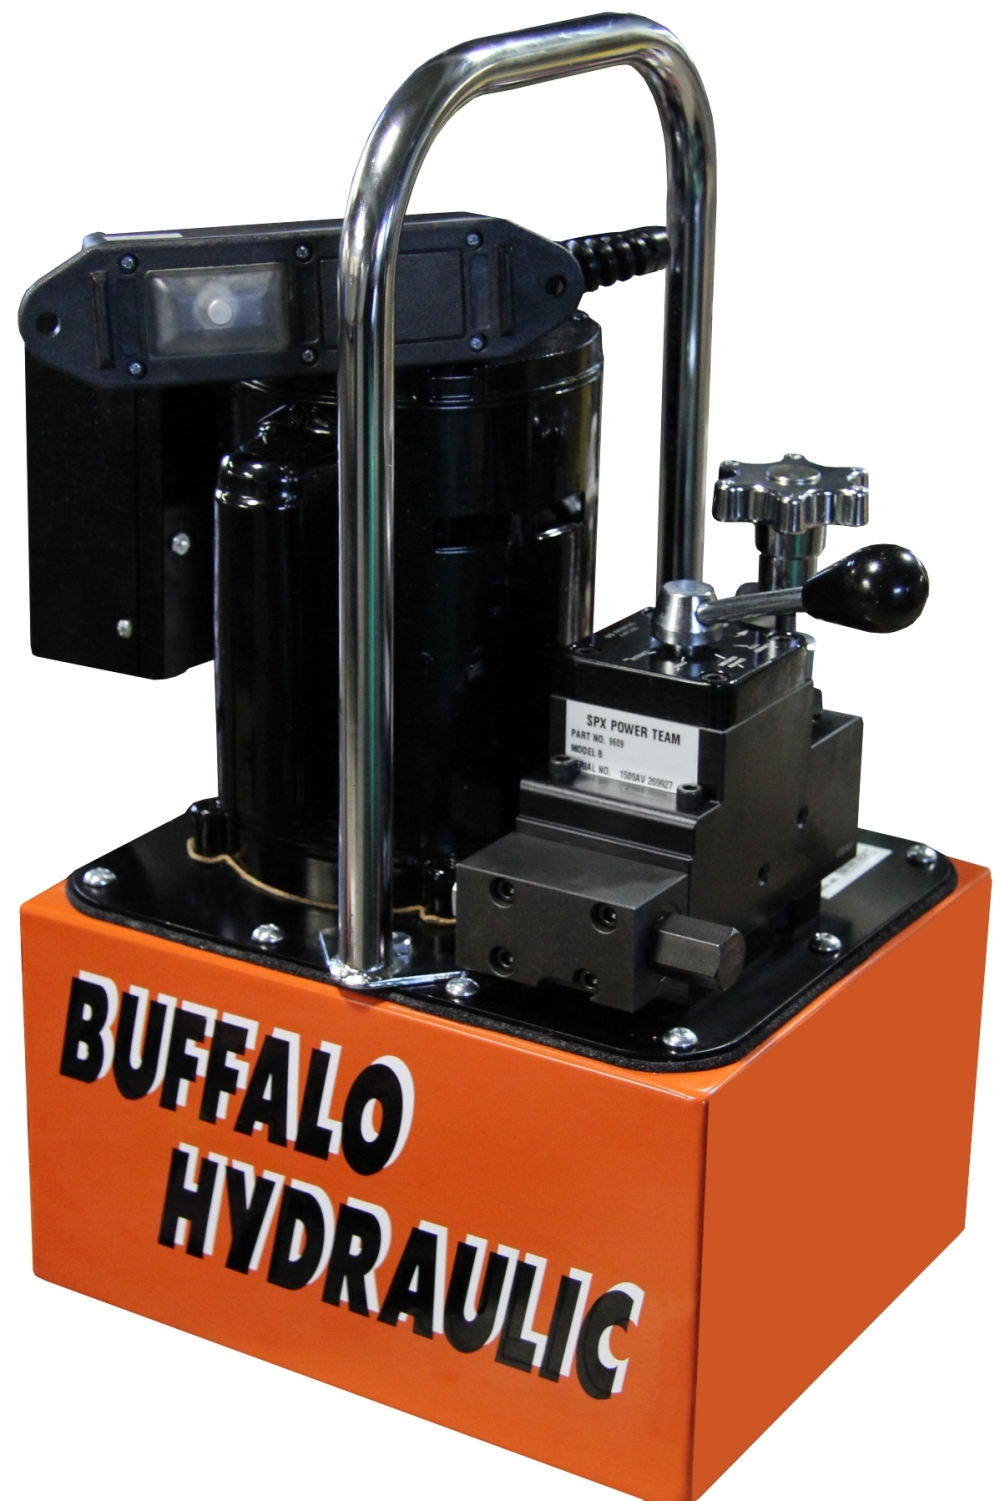 spx power team pe302 custom hydraulic pump buffalo hydraulic. Black Bedroom Furniture Sets. Home Design Ideas